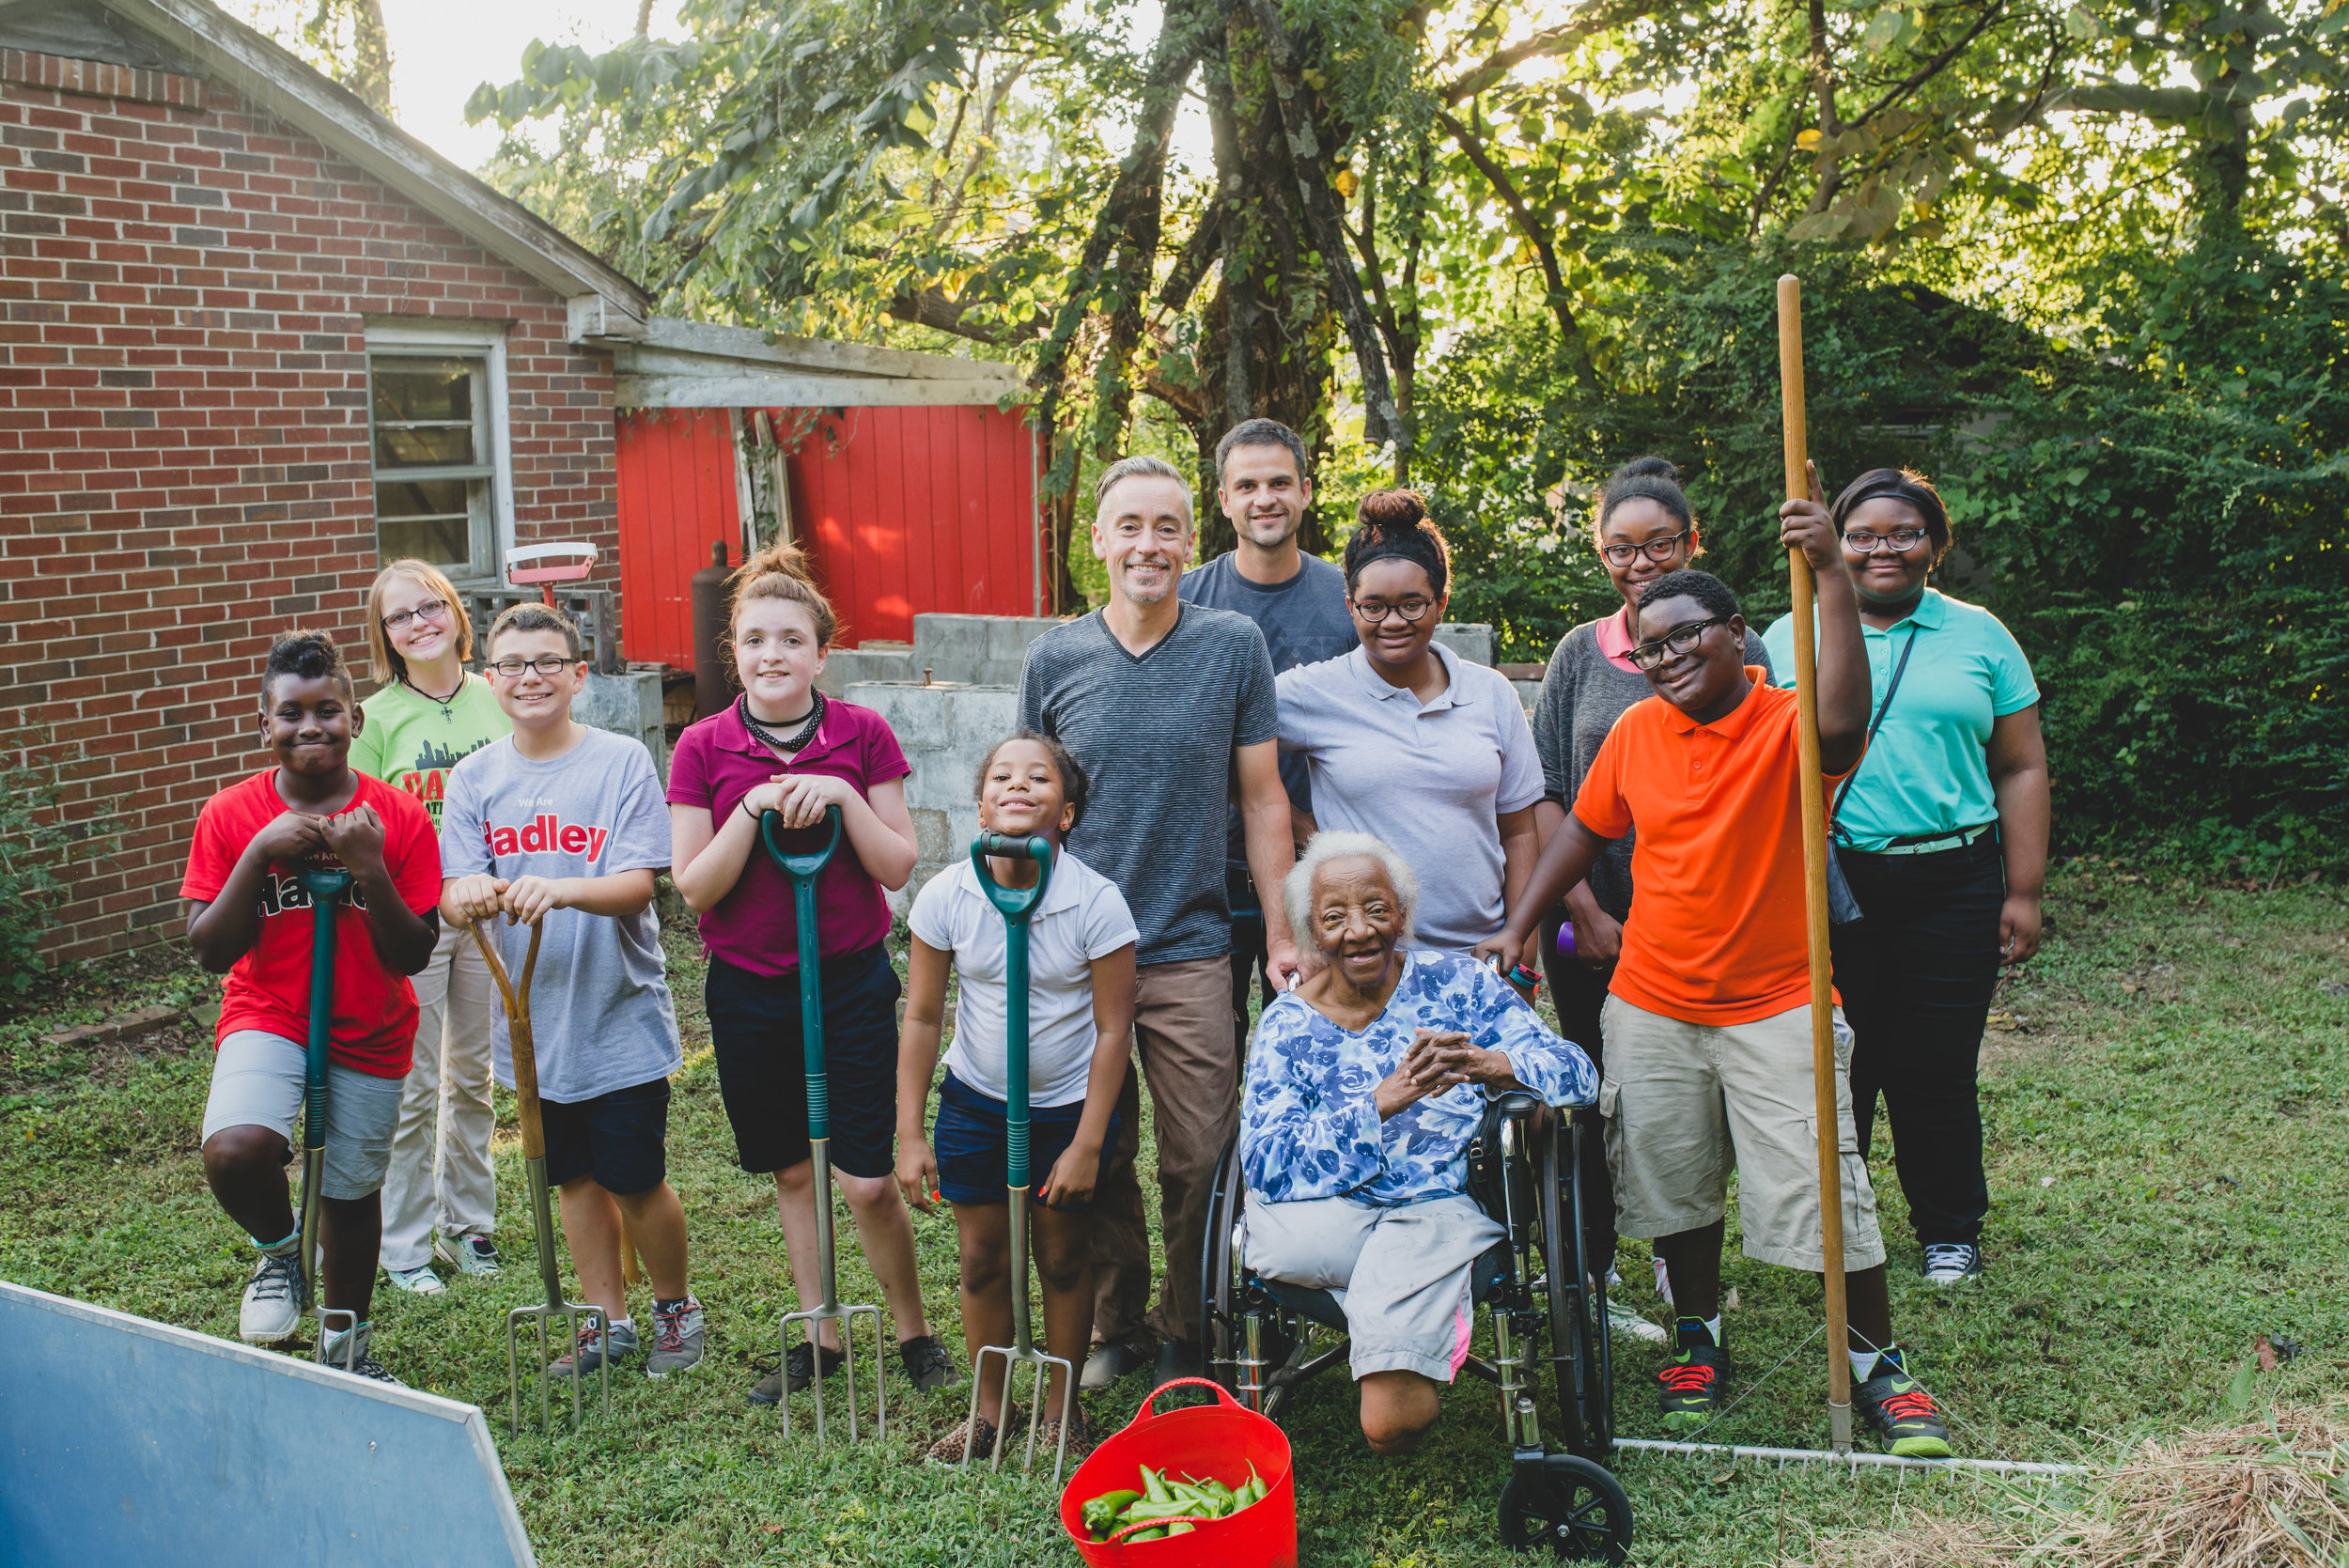 Students worked together to create a garden for Mrs. Palmer, an elderly widow in our neighborhood. Not only did students learn the processes of gardening, but they had the pleasure of seeing their harvest benefit another!